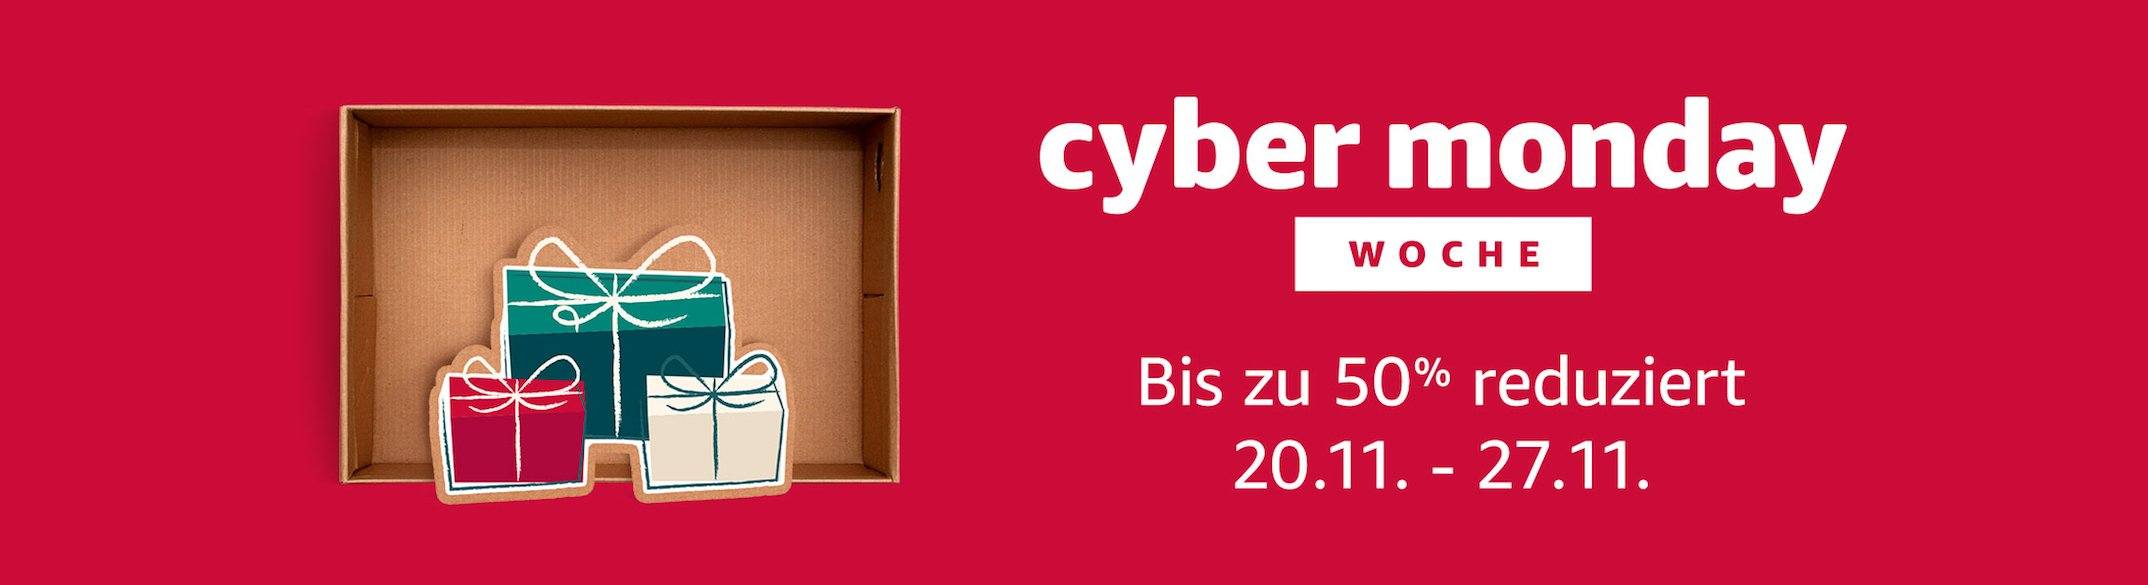 Cyber Monday Woche amazon